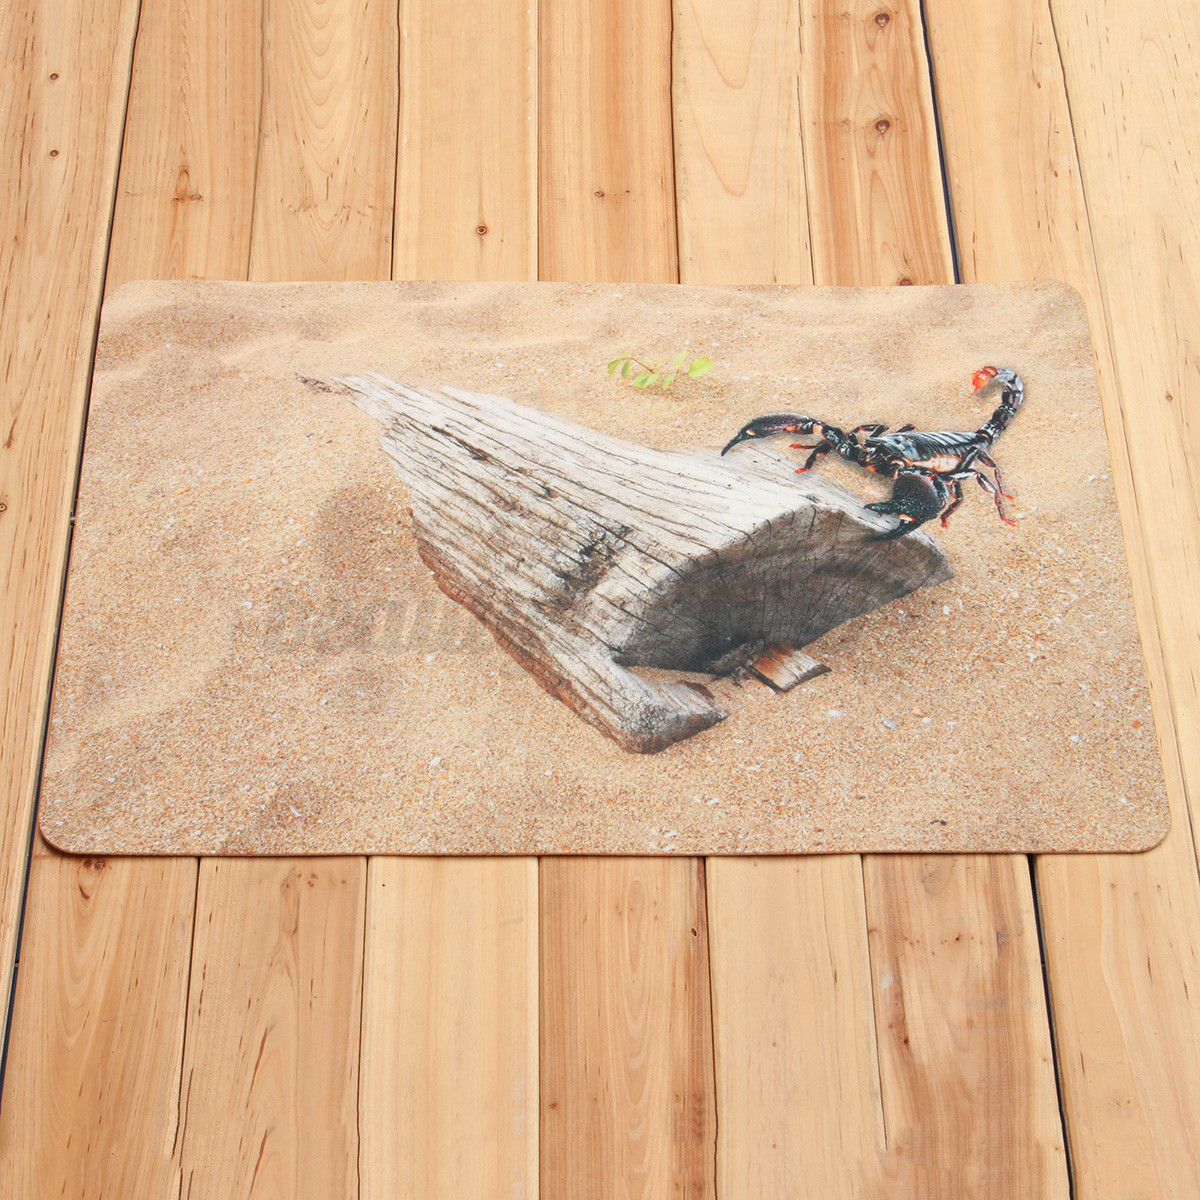 3D Scorpion Beach Door MAT NON Slip RUG Living Room